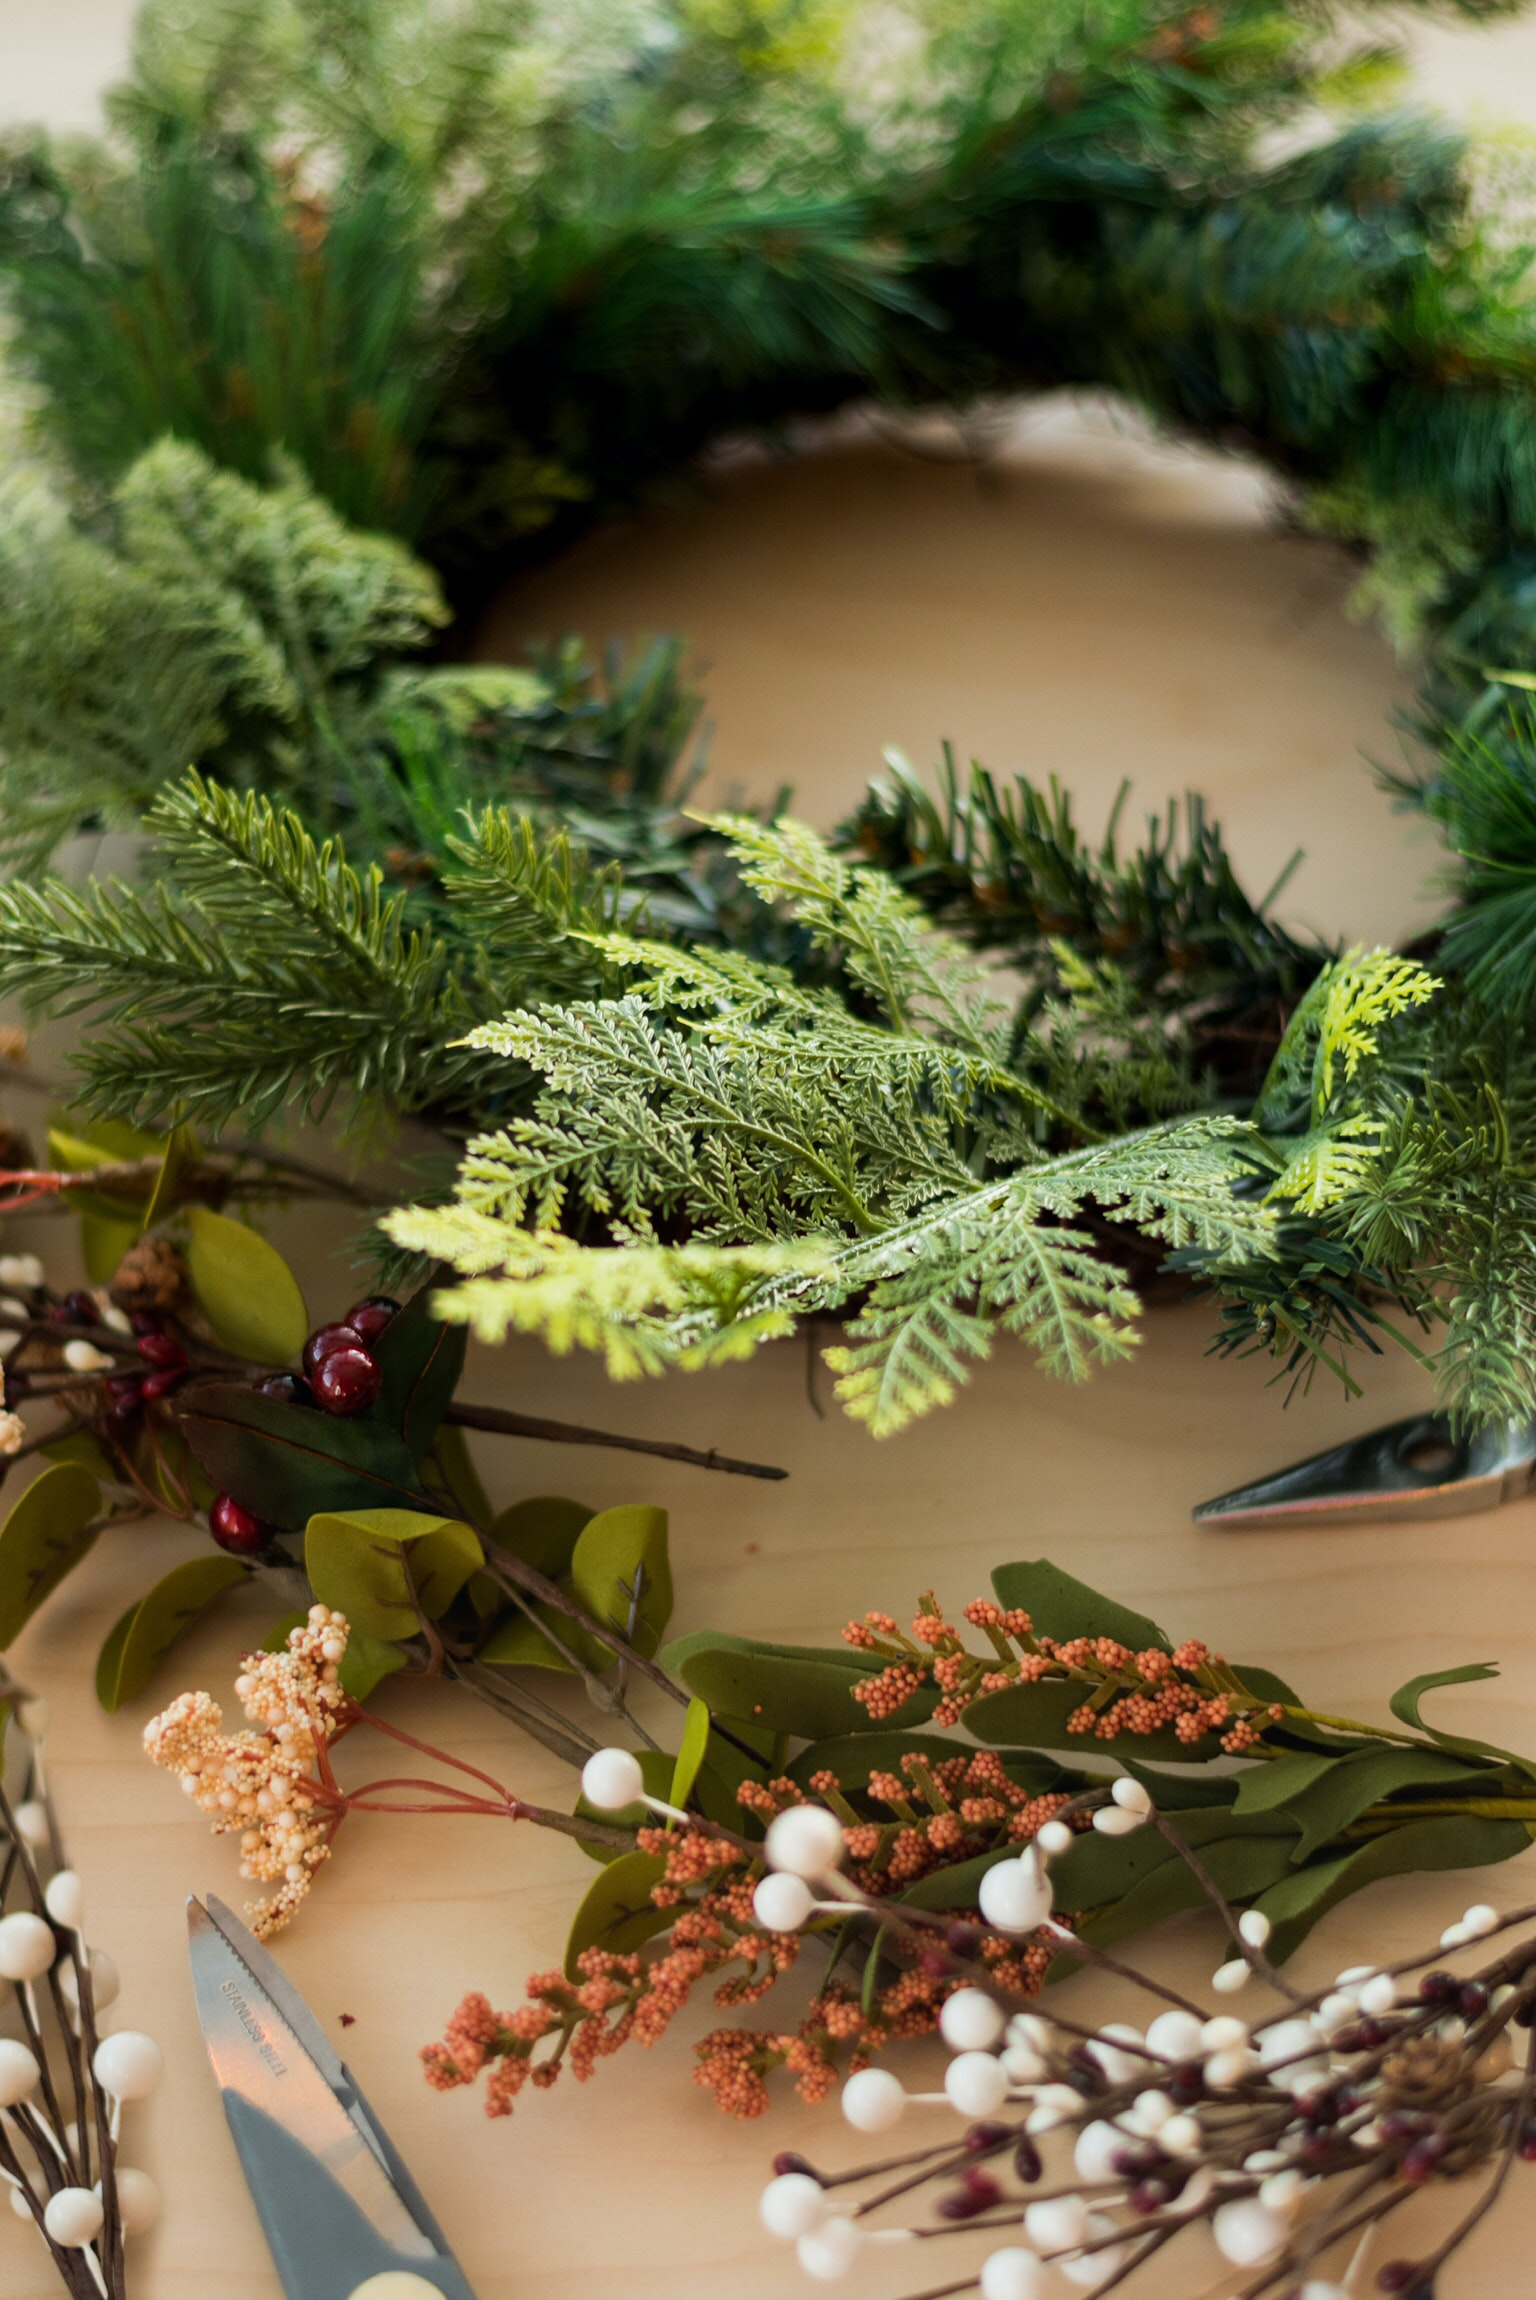 Christmas wreath on brown surface